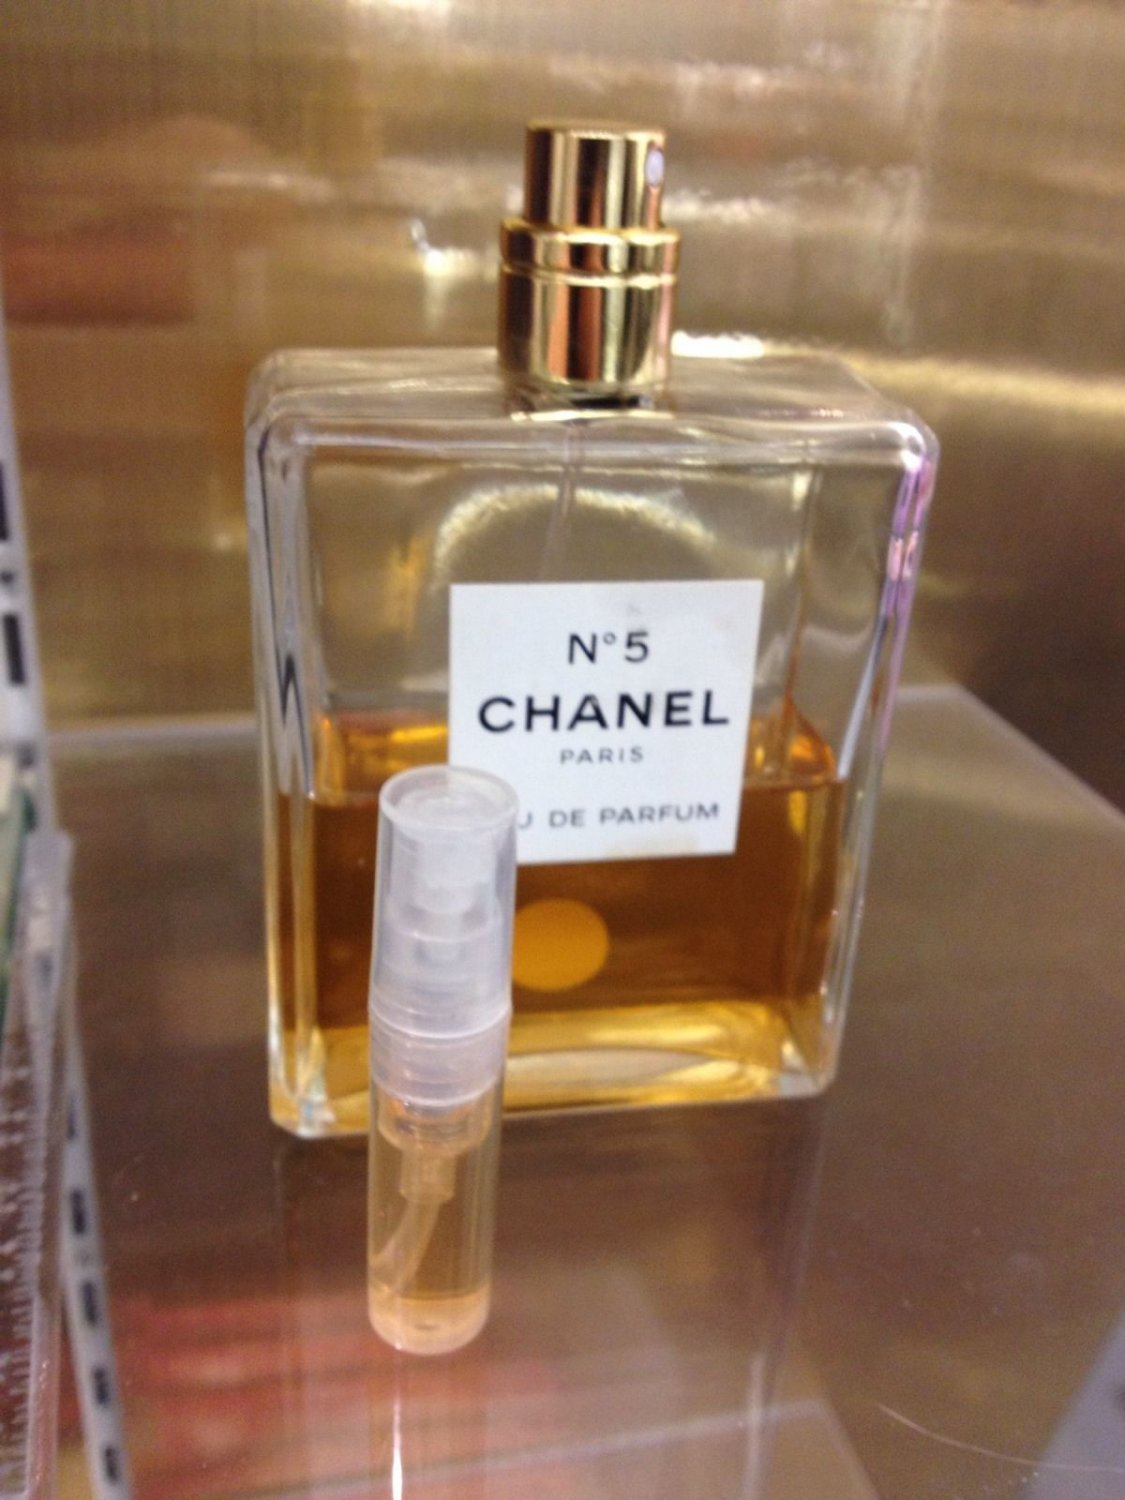 CHANEL NO 5 EAU DE PARFUM - 1.7 ml Perfume Sample Spray Atomizer - 100% Authentic